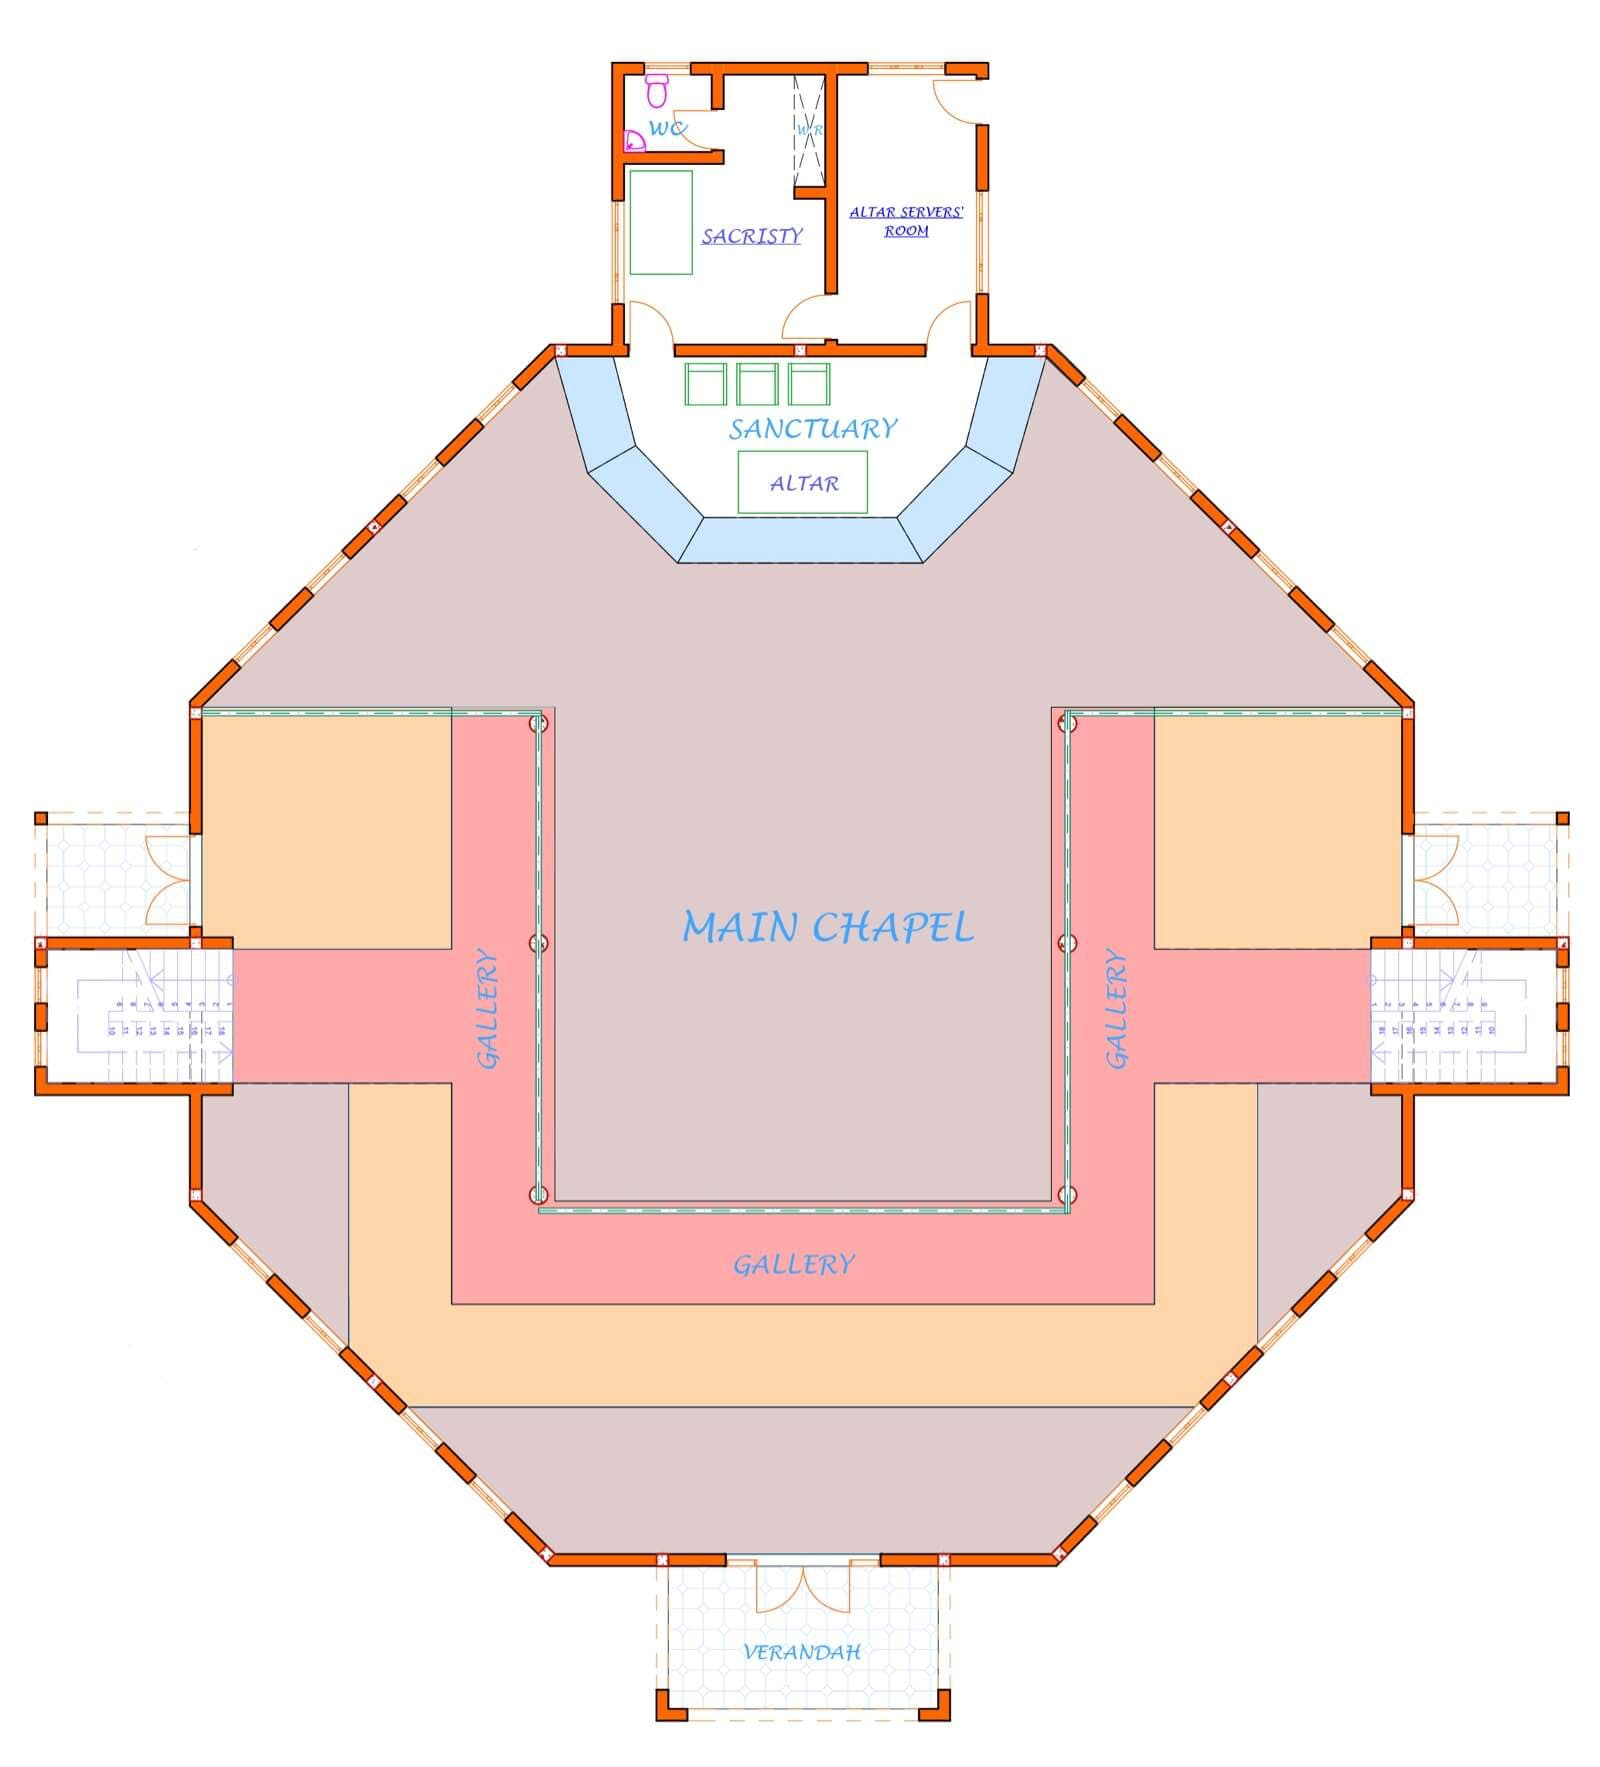 Interior plans of the chapel